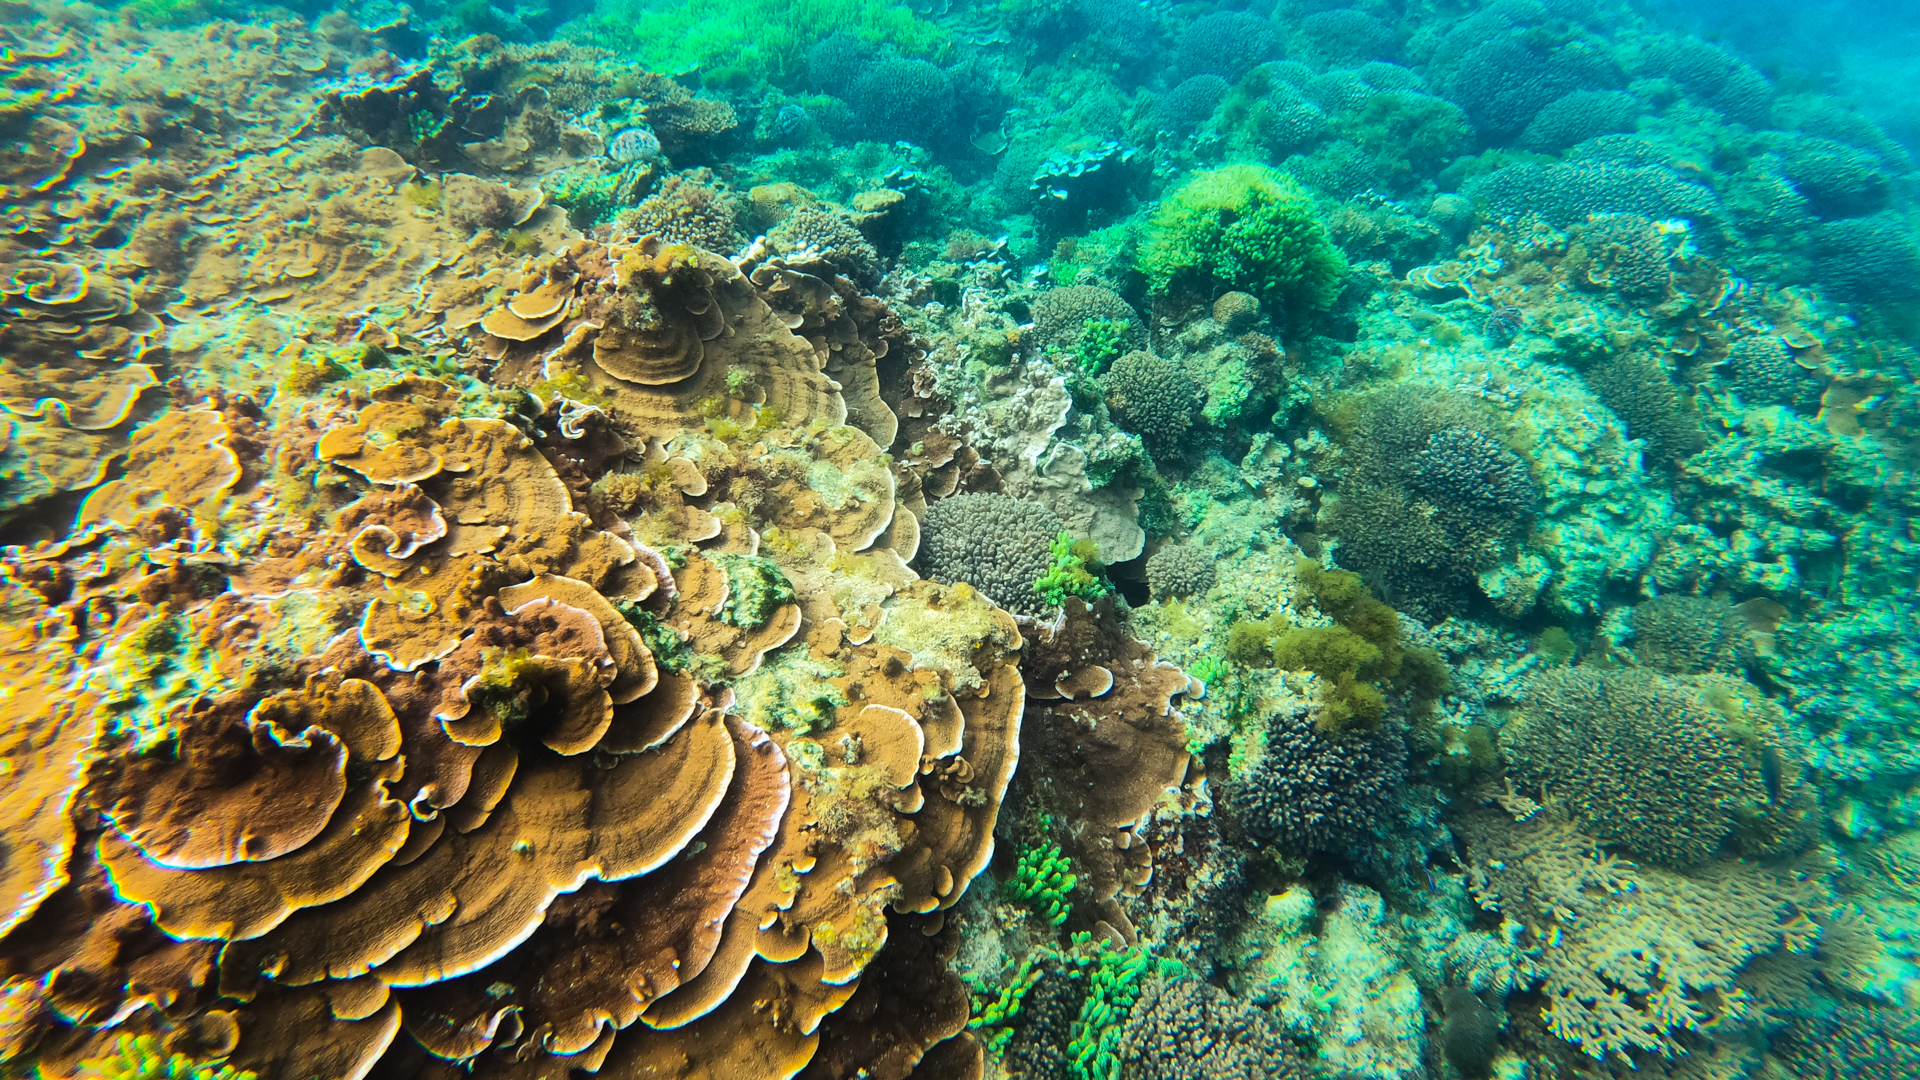 Underwater photograph of corals and plants.